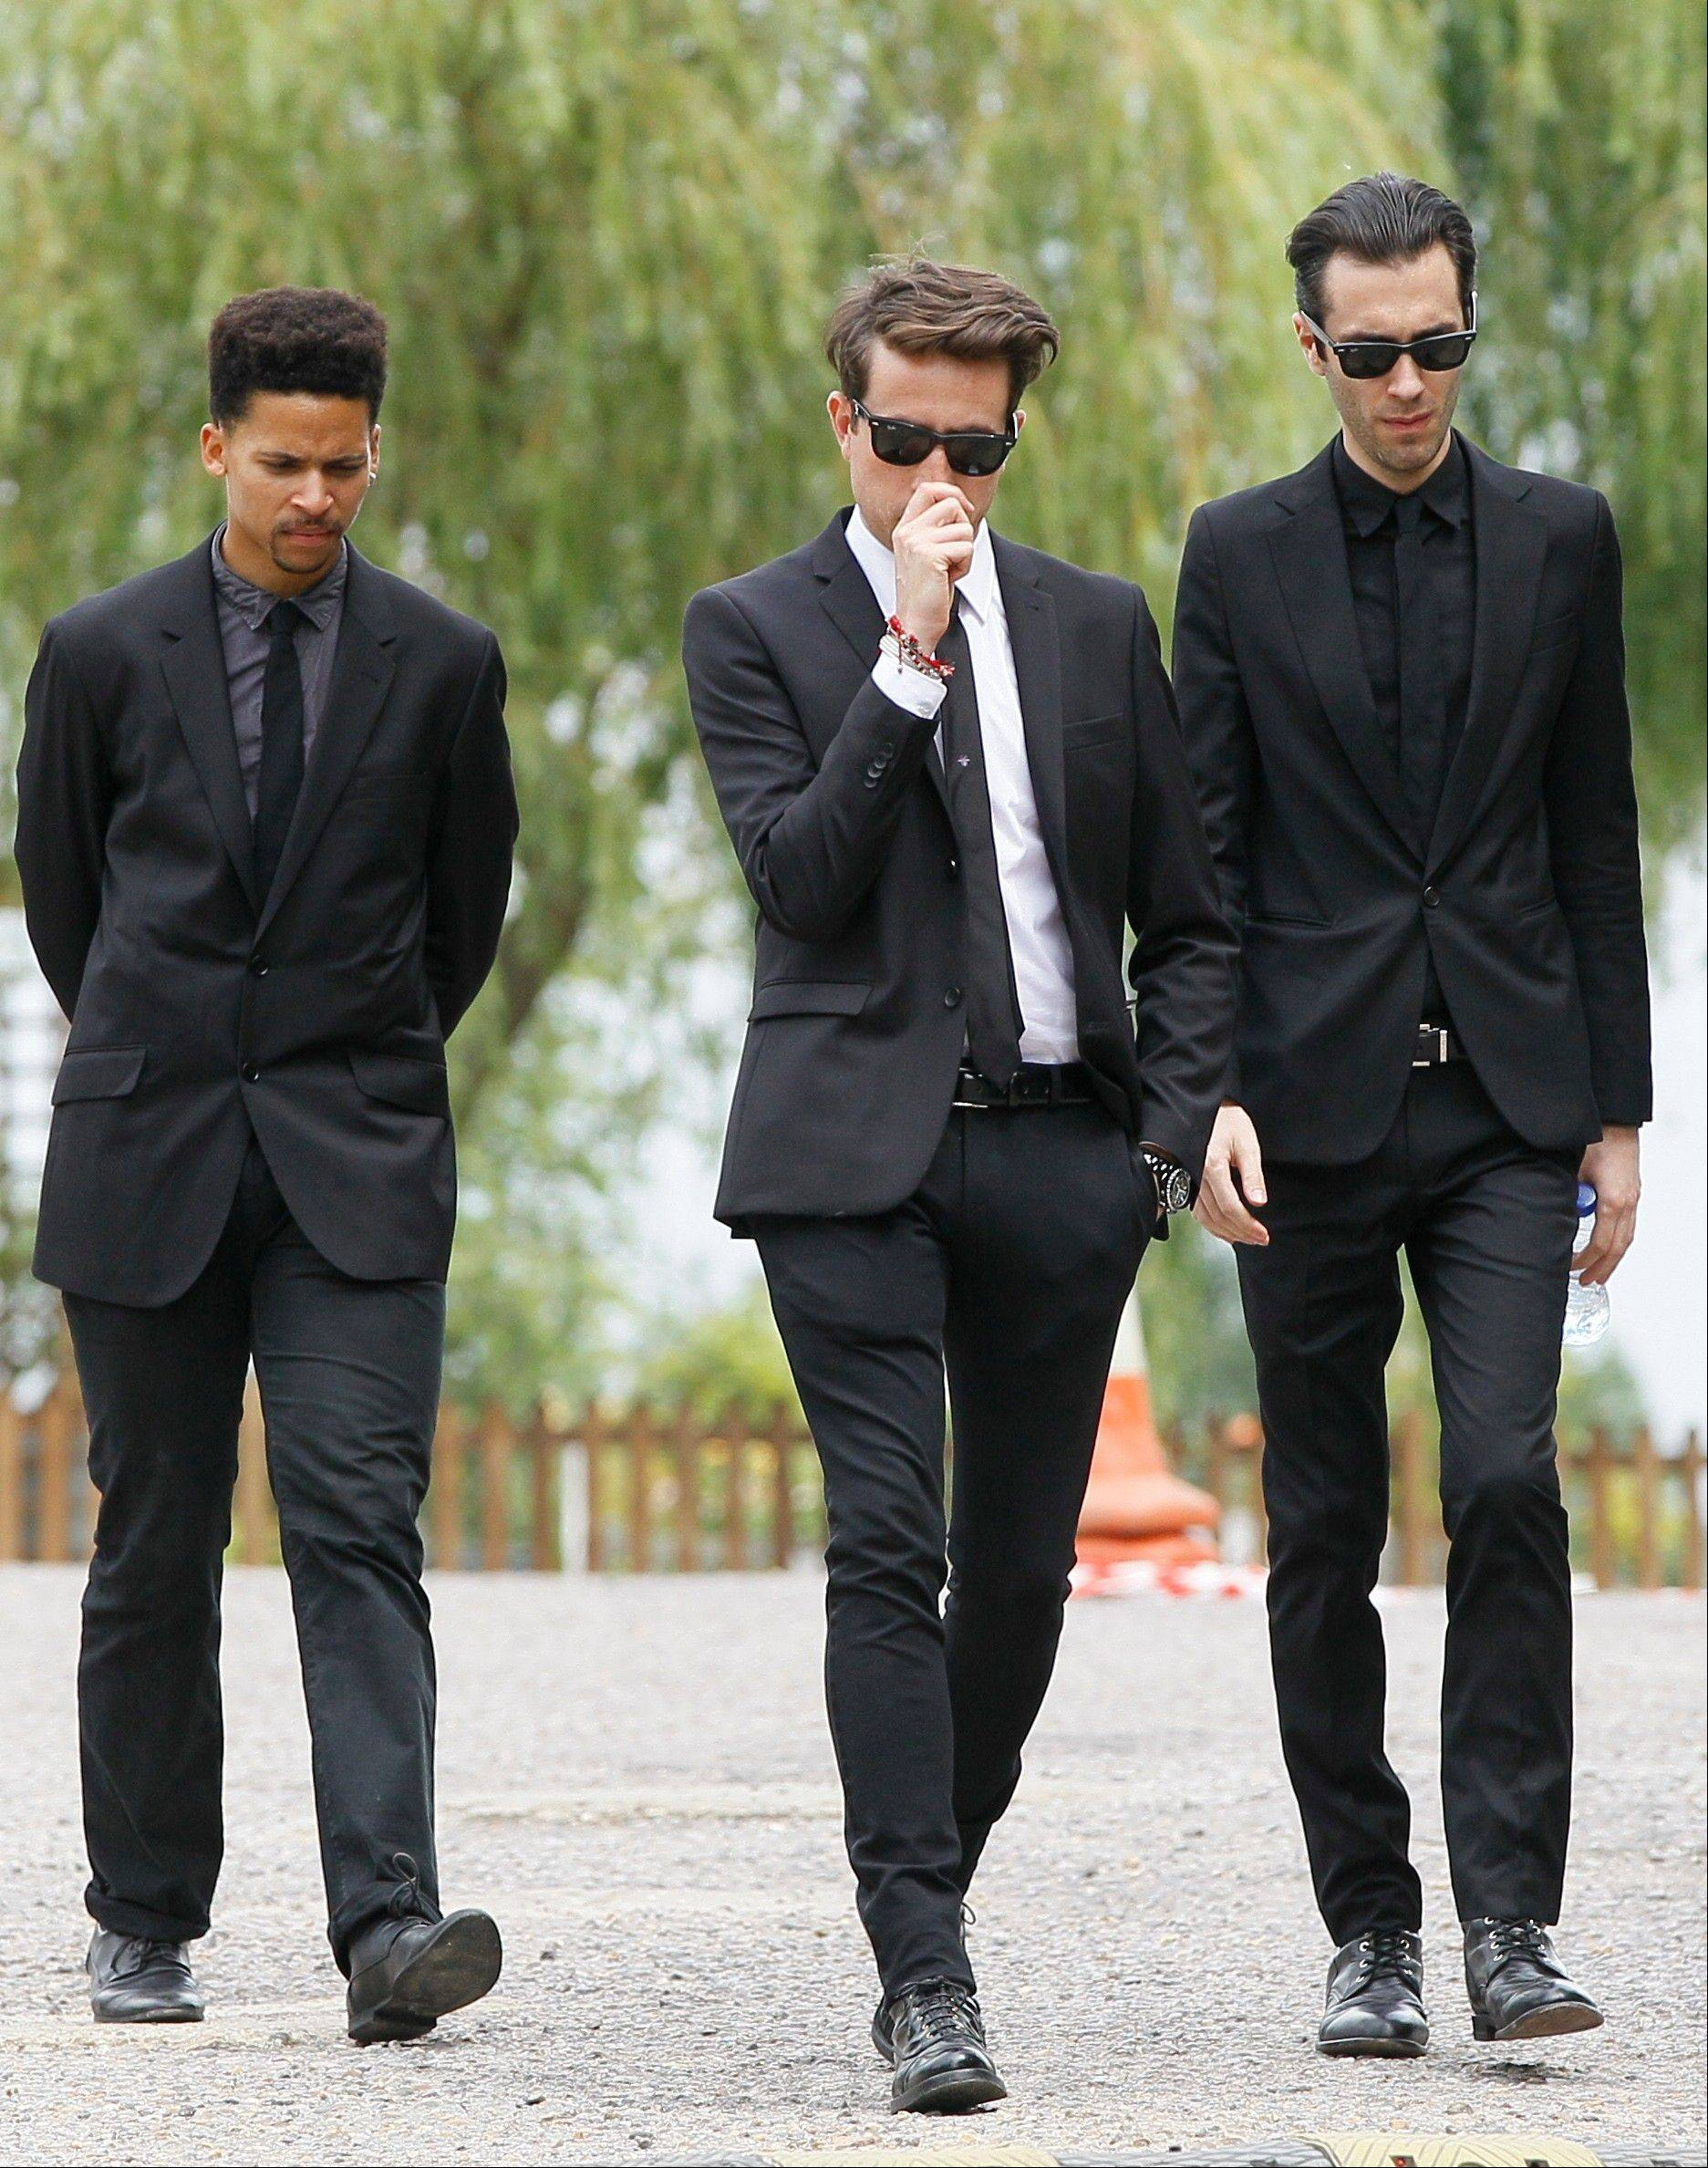 Radio dj Nick Grimshaw, centre, and two other mourners leave Edgwarebury Cemetery, in London, Tuesday July 26, 2011, after attending the funeral of singer Amy Winehouse.